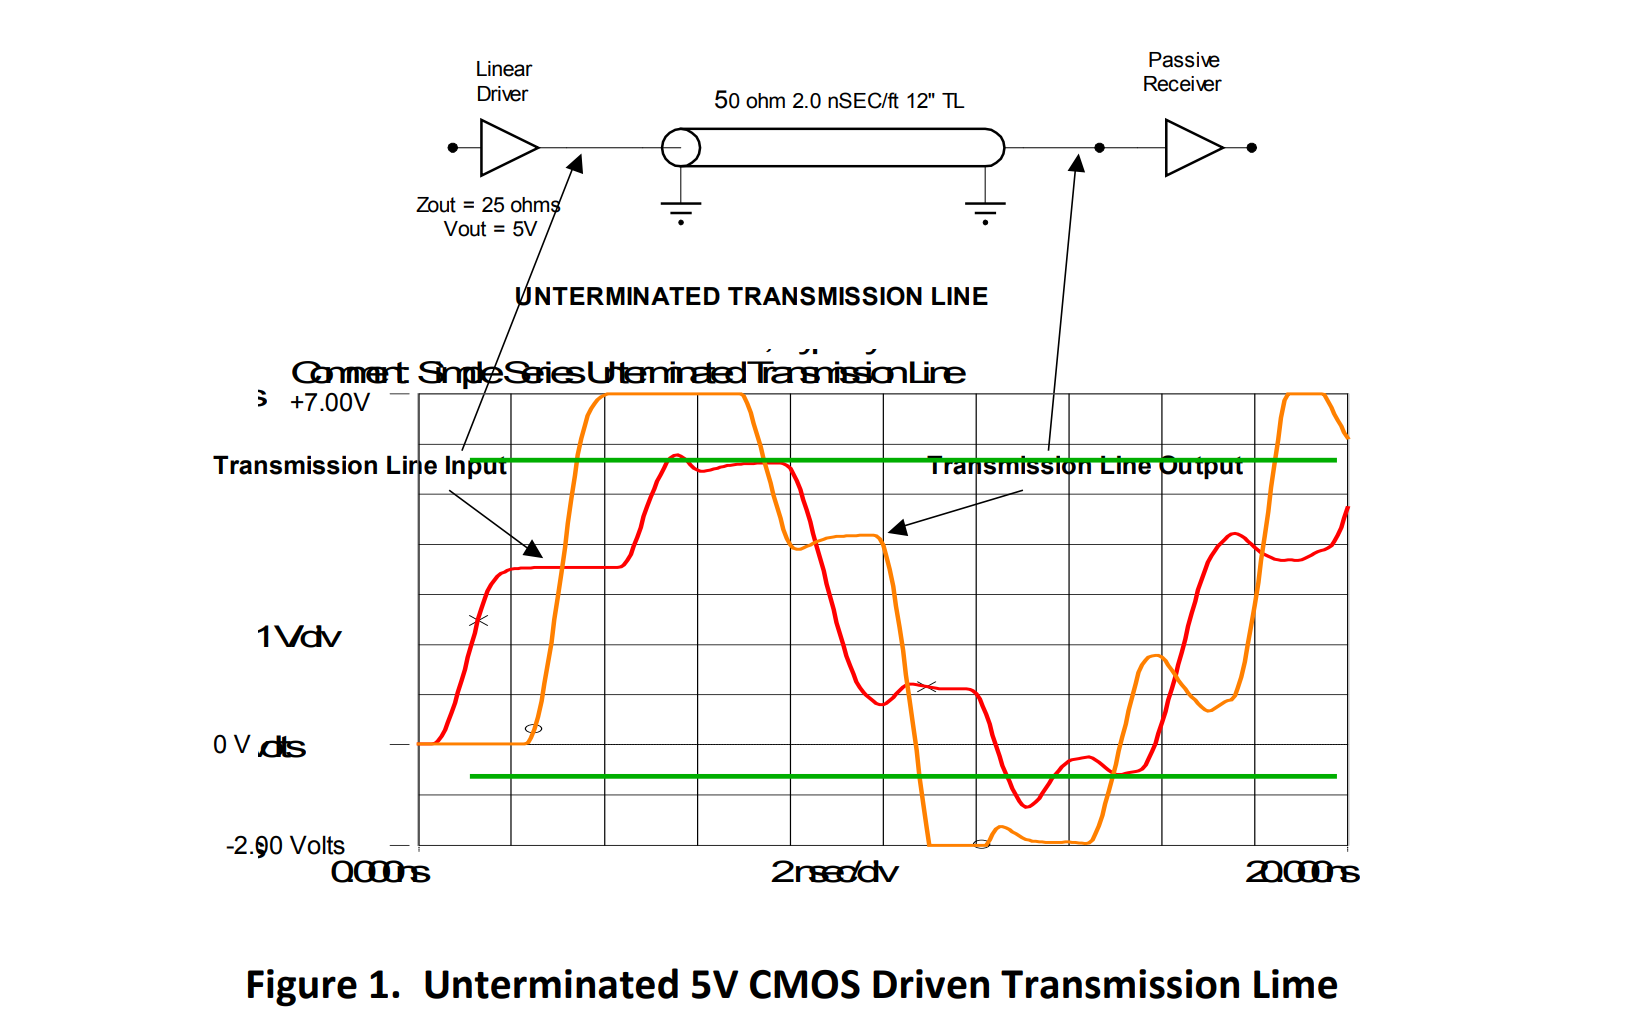 Unterminated 5V CMOS Driven Transmission Line